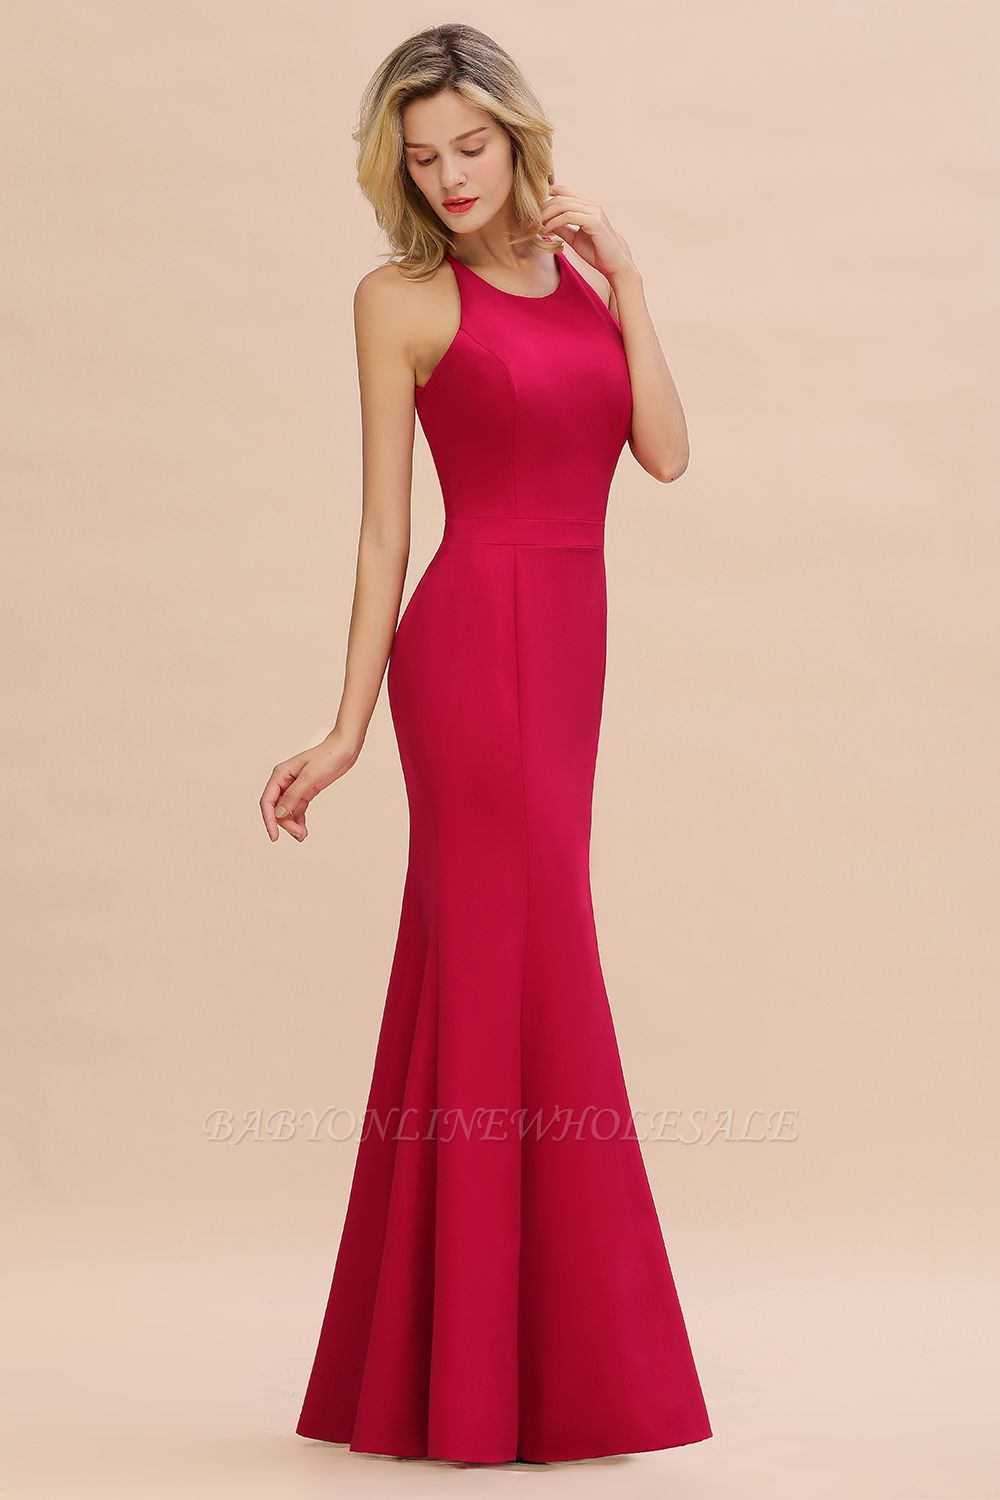 Sexy Halter Mermaid Evening Maxi Gown Side Slit Party Dress